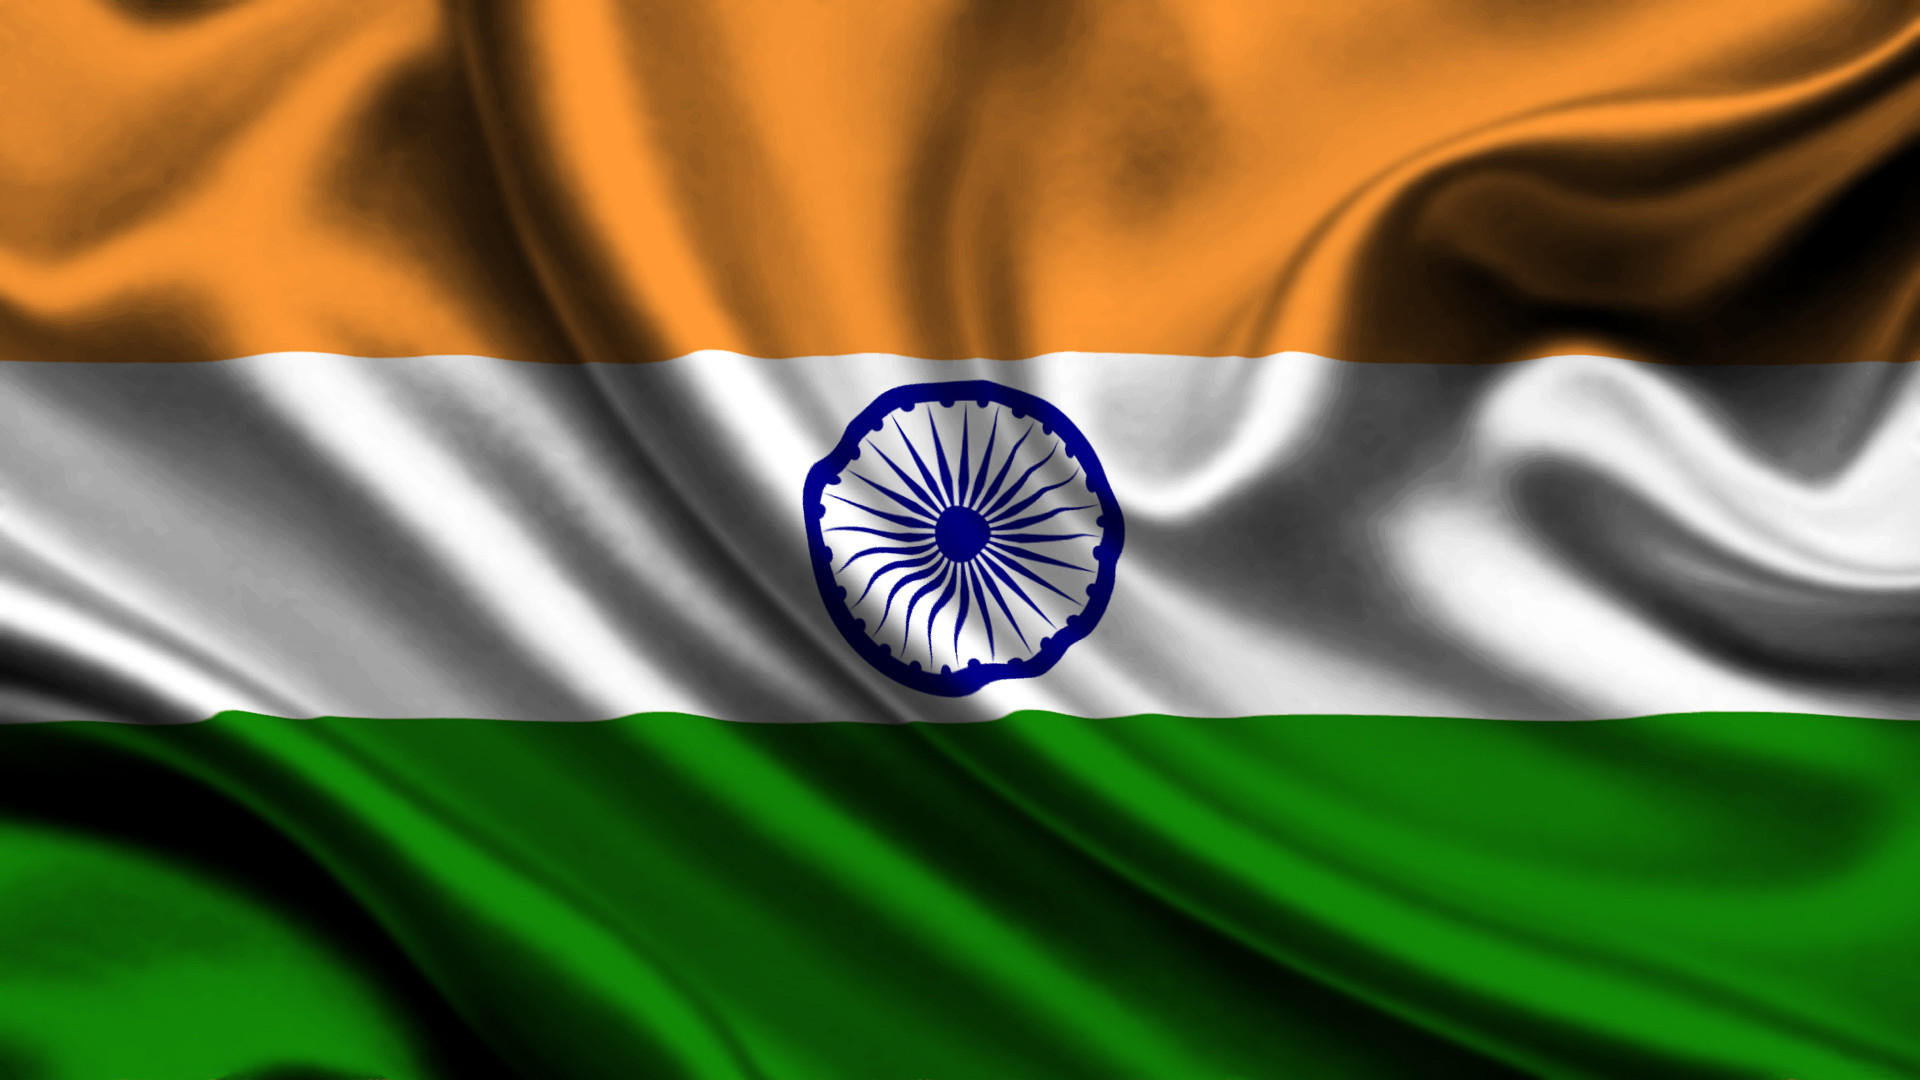 Hd wallpaper of india 65 images - Indian flag 4k wallpaper ...